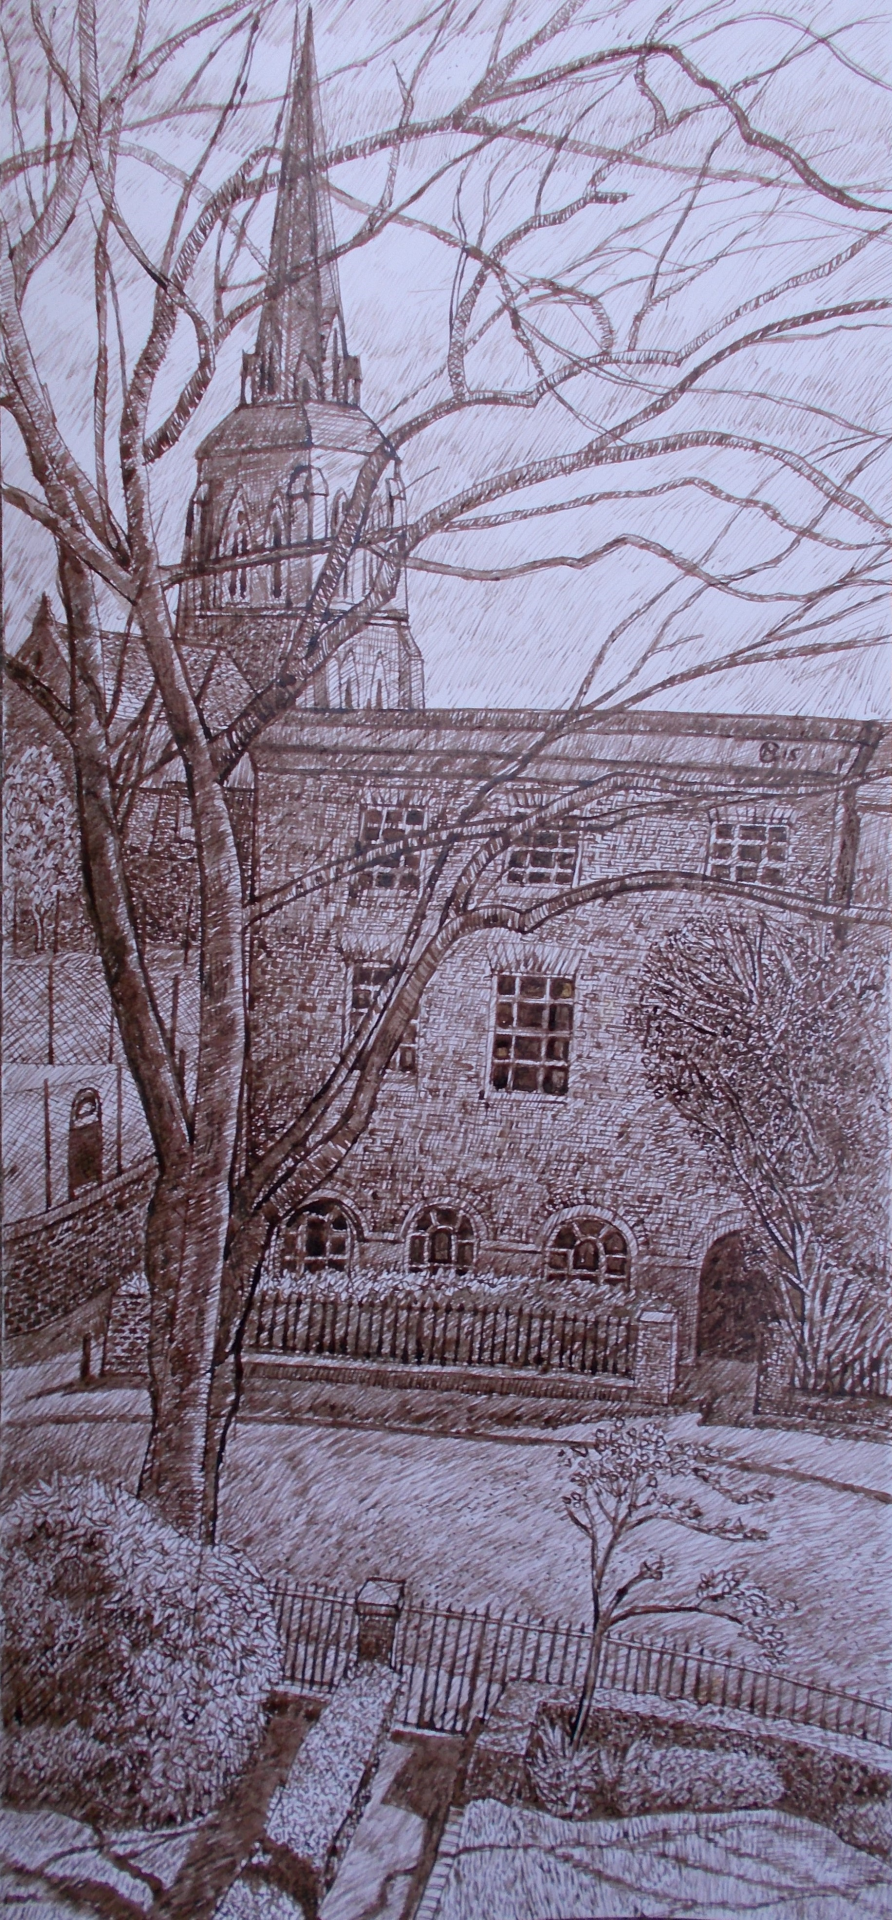 Houses near Denmark Hill - Commission (2015)